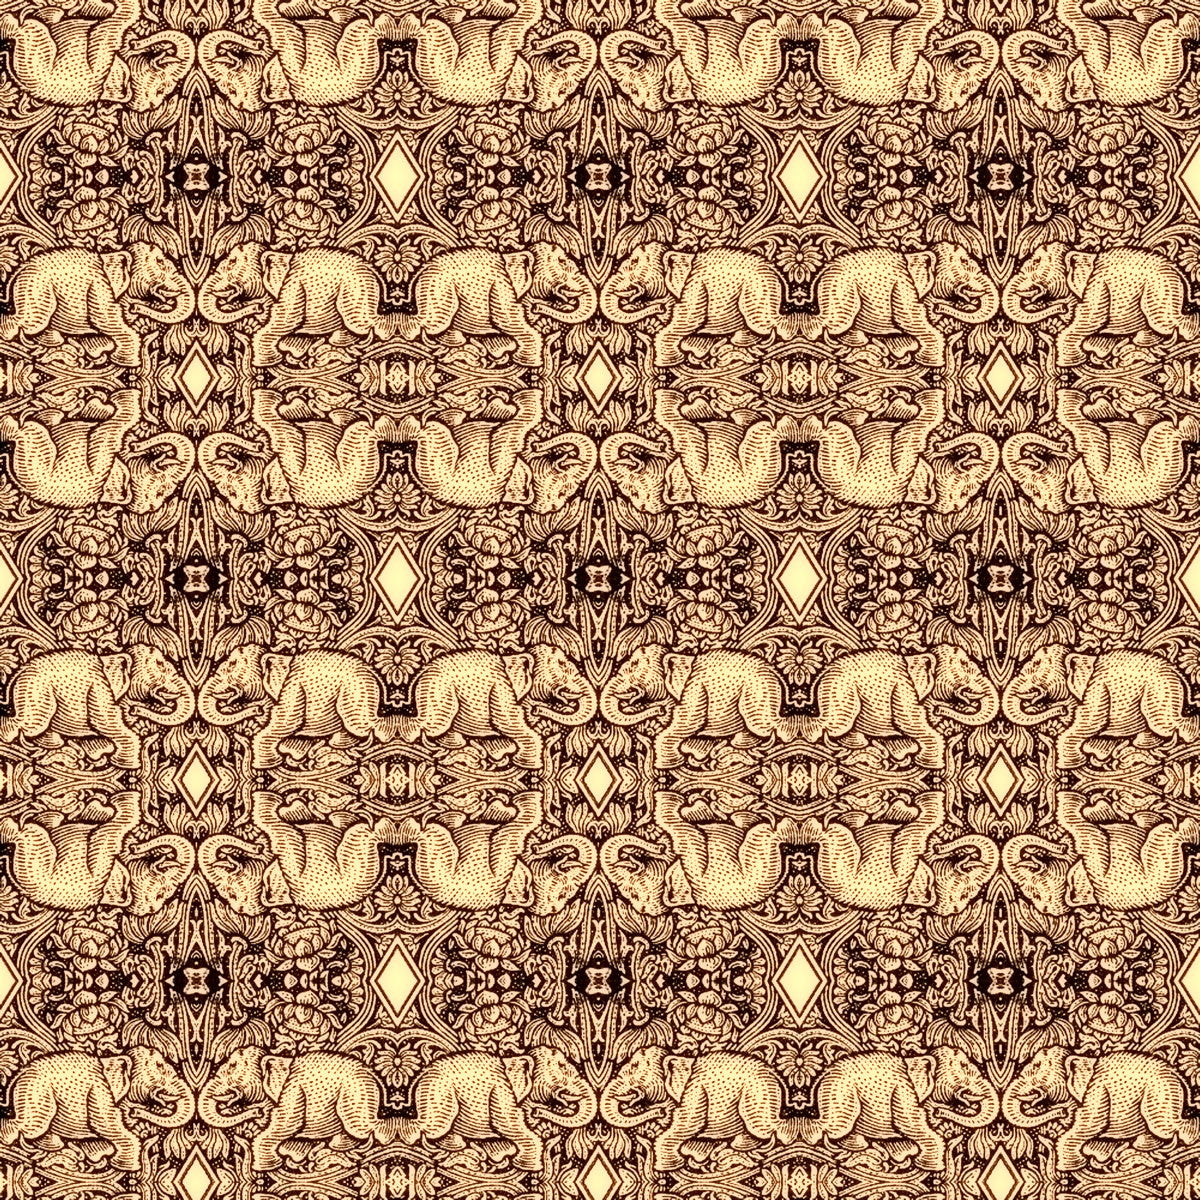 Cushion - Kaleidoscope - Elephant - Sepia Glow - Stamp Detail